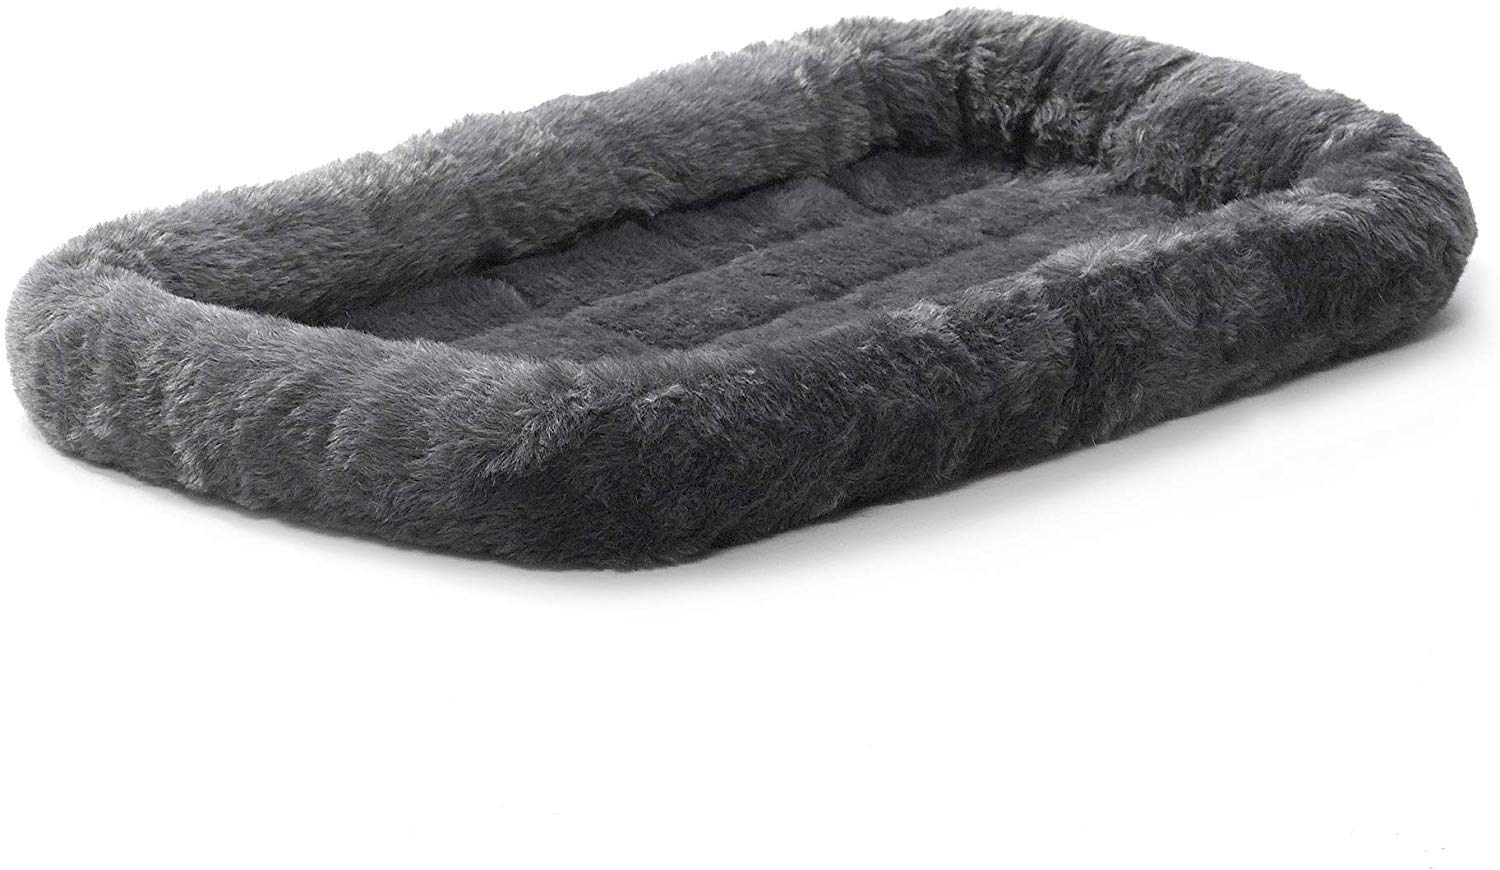 Fluffy's Luxurious Dog Bed